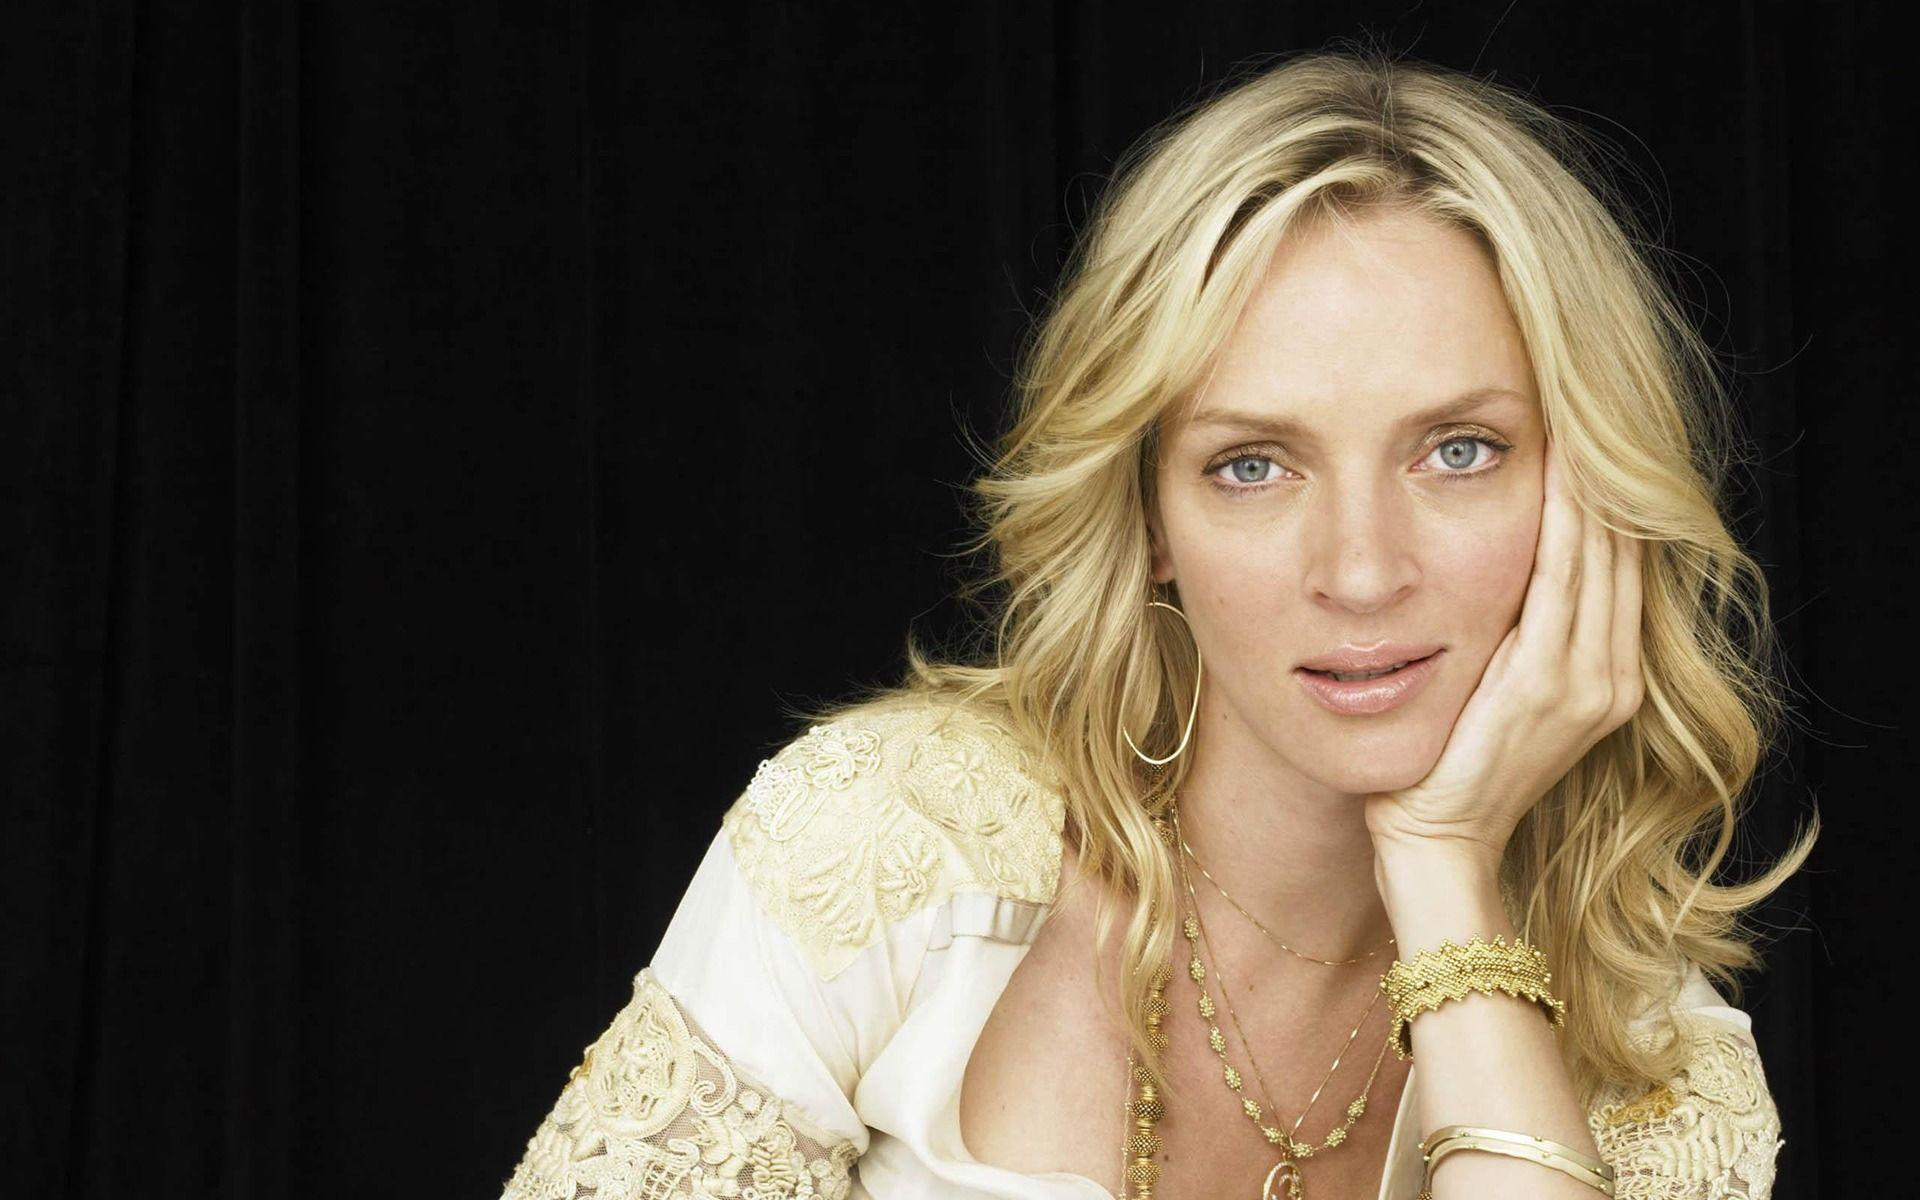 Most Attractive HD Hollywood Actress Wallpapers - Dzinepress